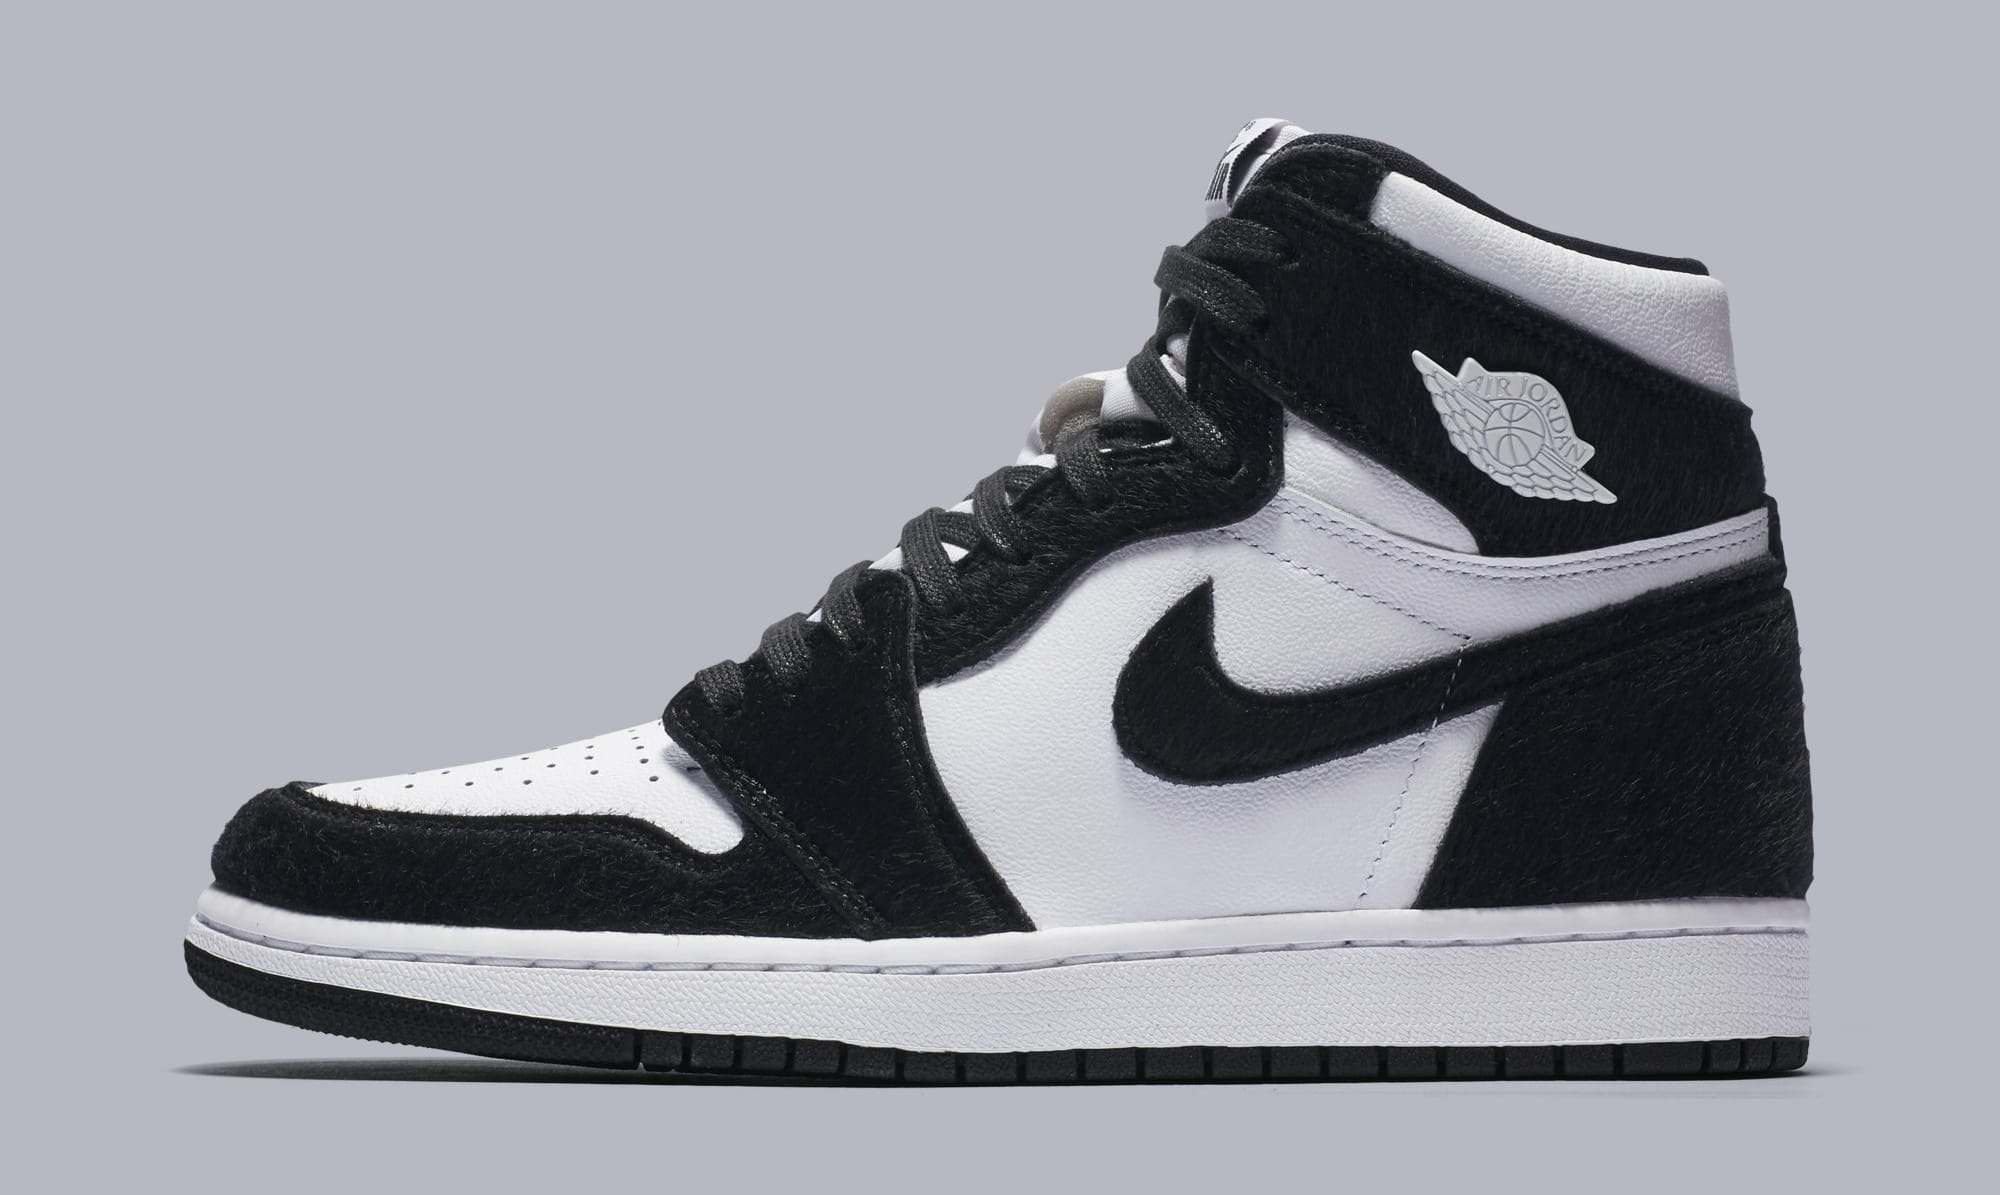 size 40 5a1b8 311b8 WMNS Air Jordan 1 High  Panda  CD0461-007 (Lateral)